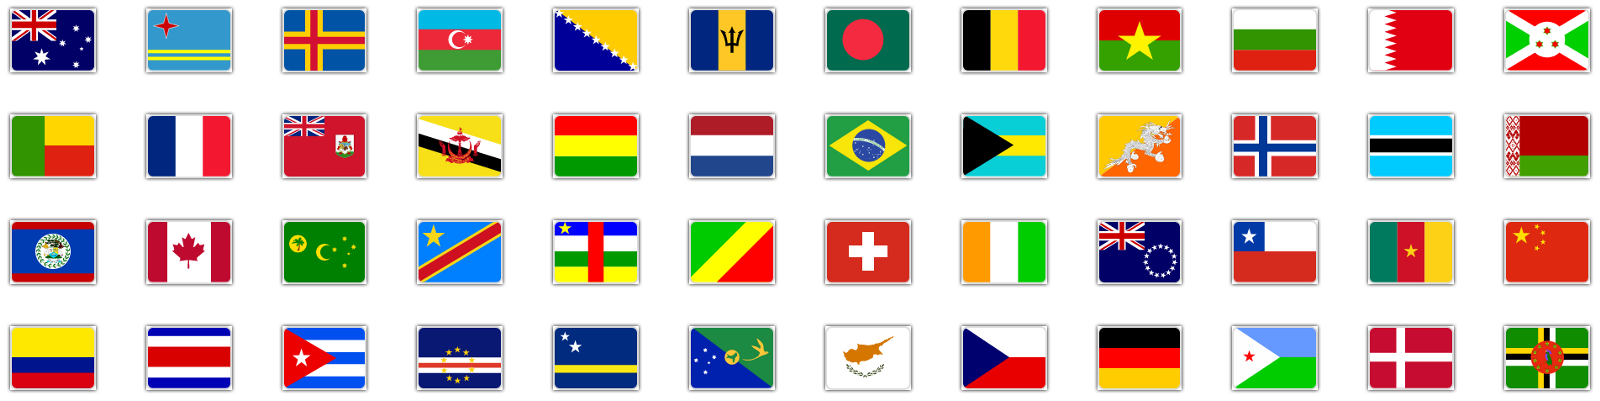 1600x401 High Quality Country Flags In Vector Format Lipis Medium